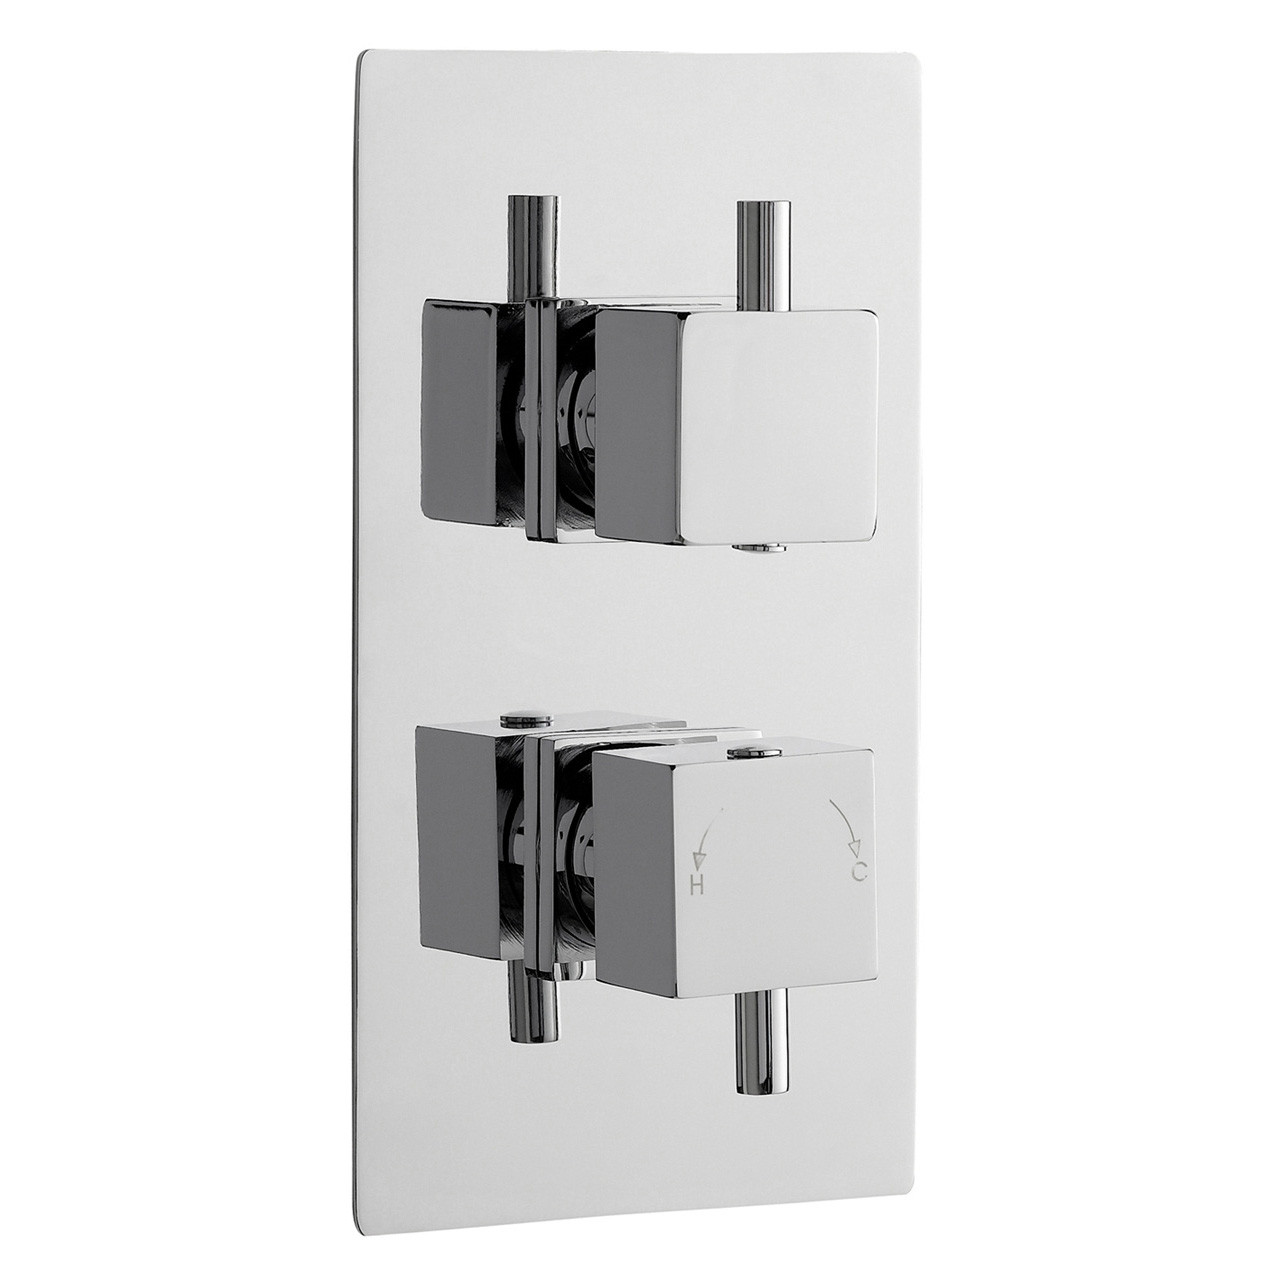 Ultra Twin Concealed Thermostatic Shower Valve - JTY301